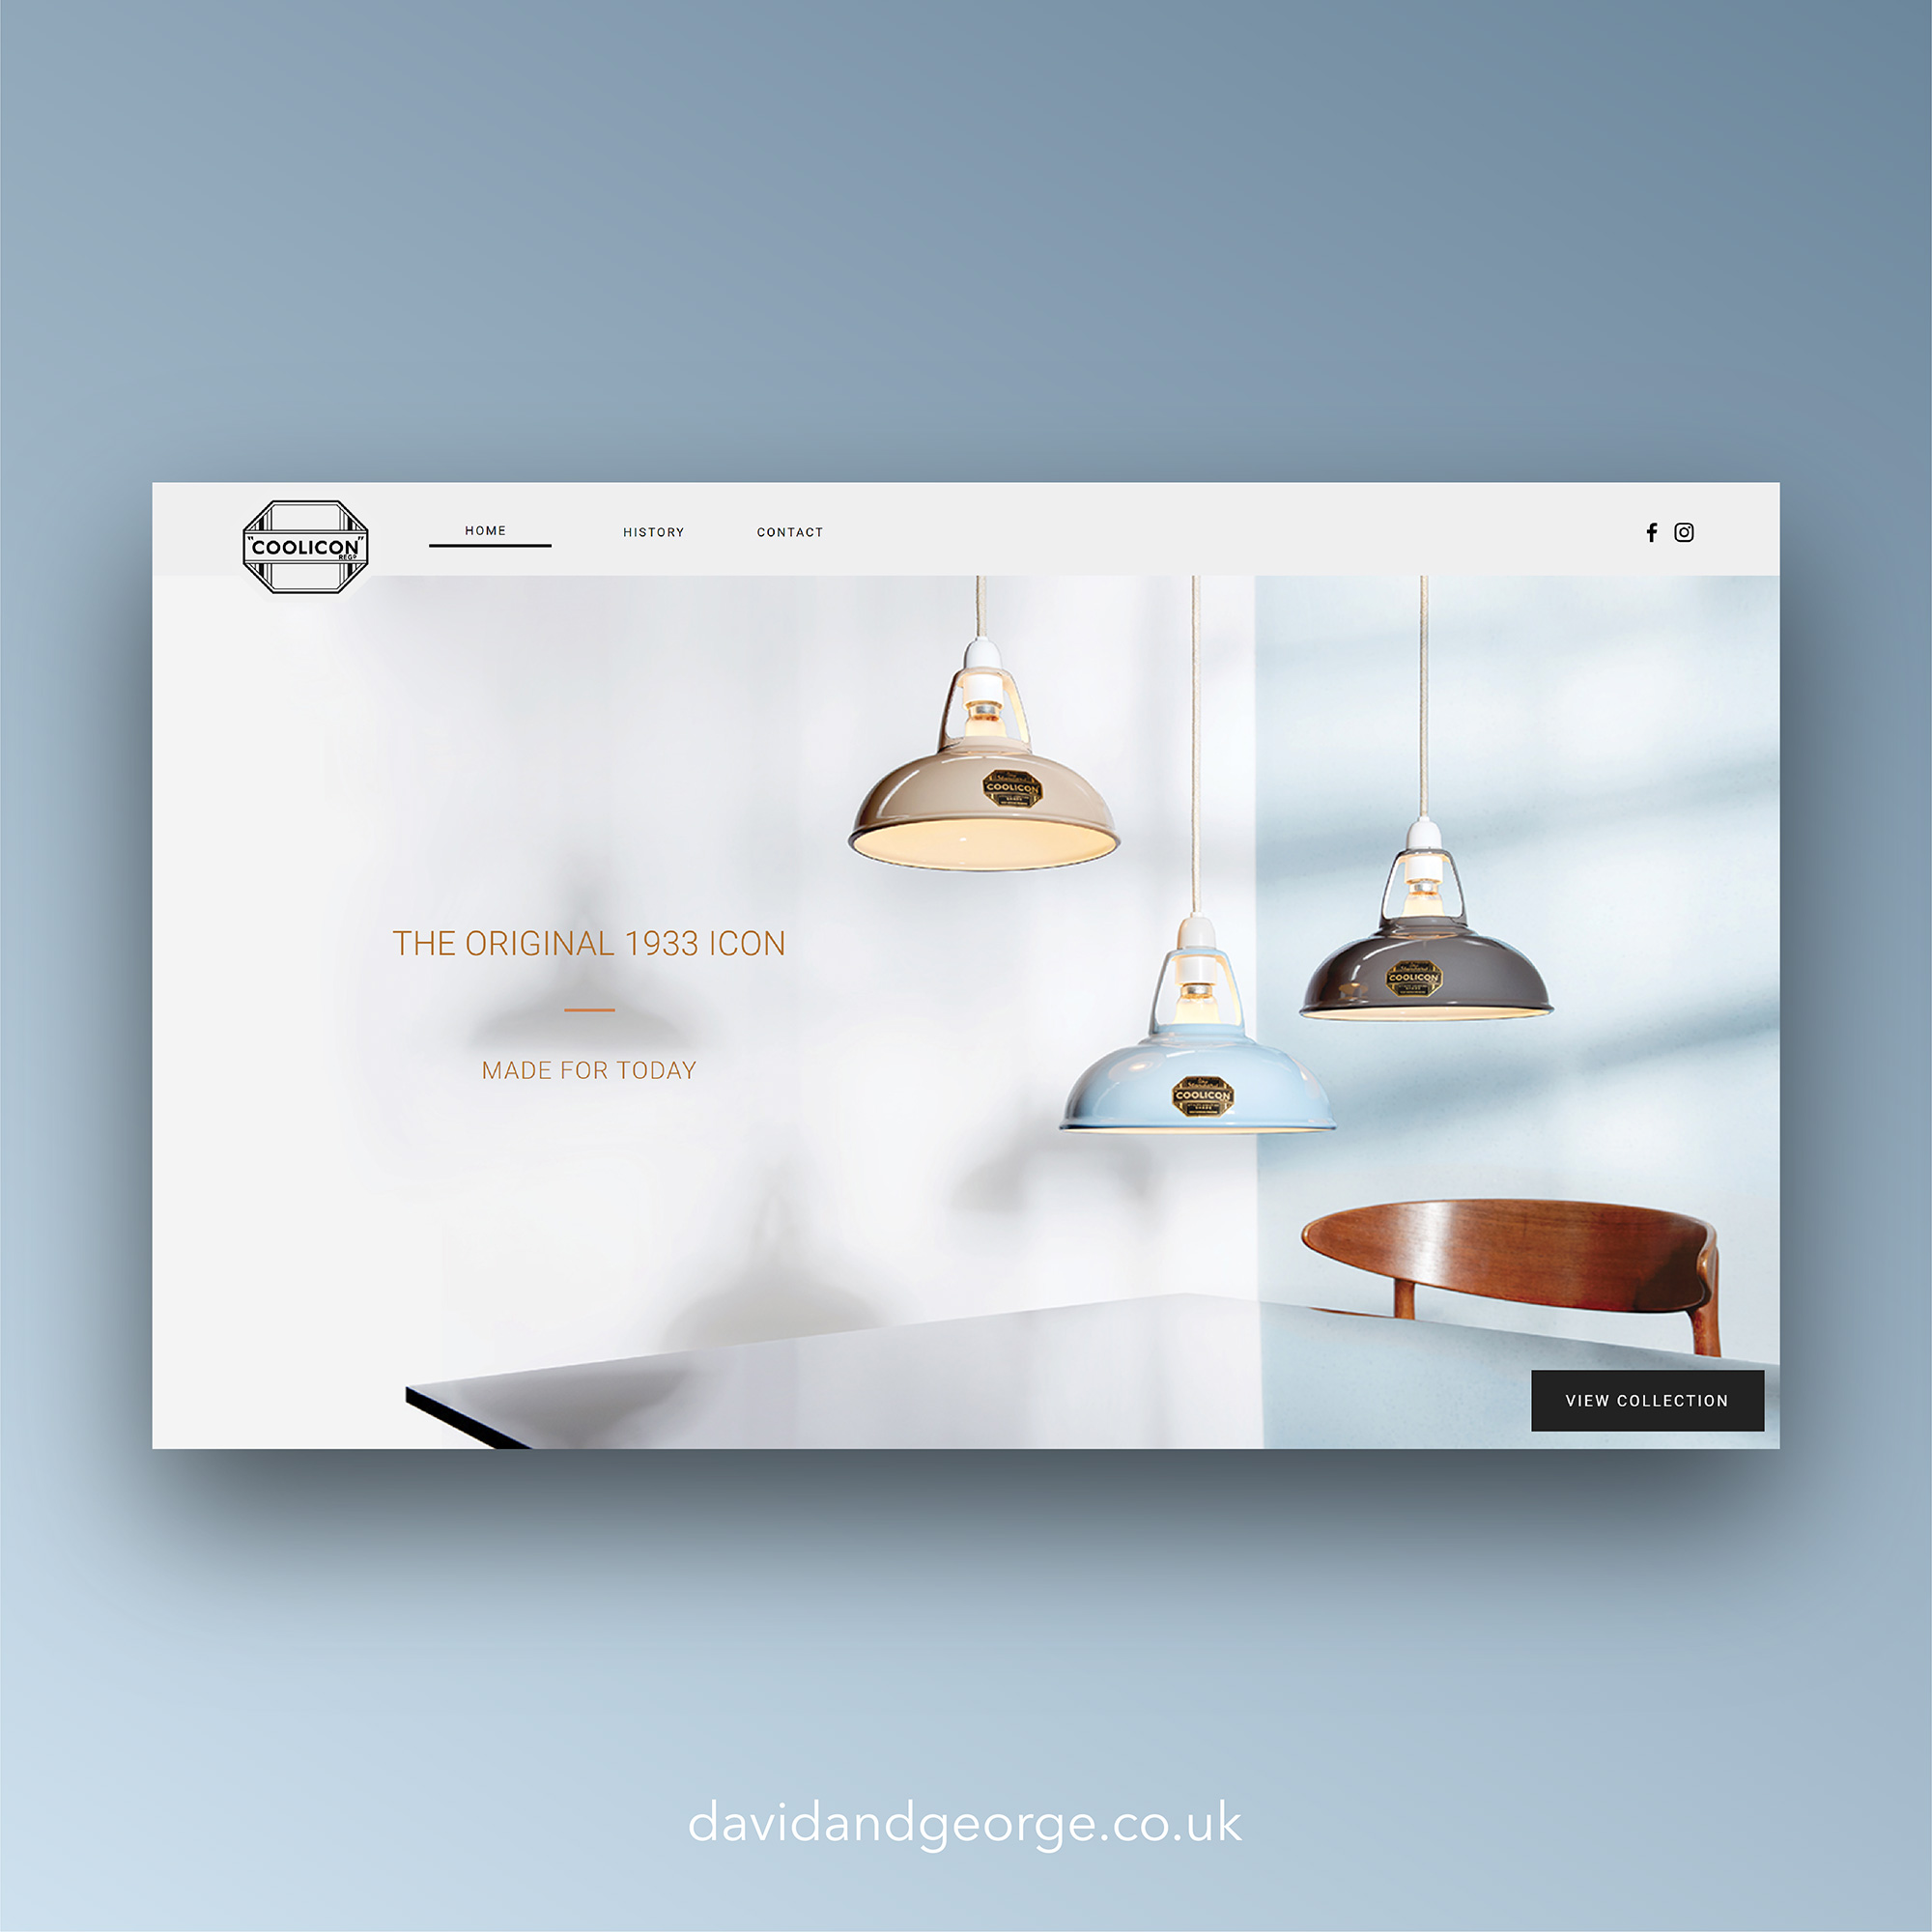 squarespace-website-design-london-edinburgh-uk-david-and-george-coolicon-lighting-squarespace-ecommerce-example.jpg